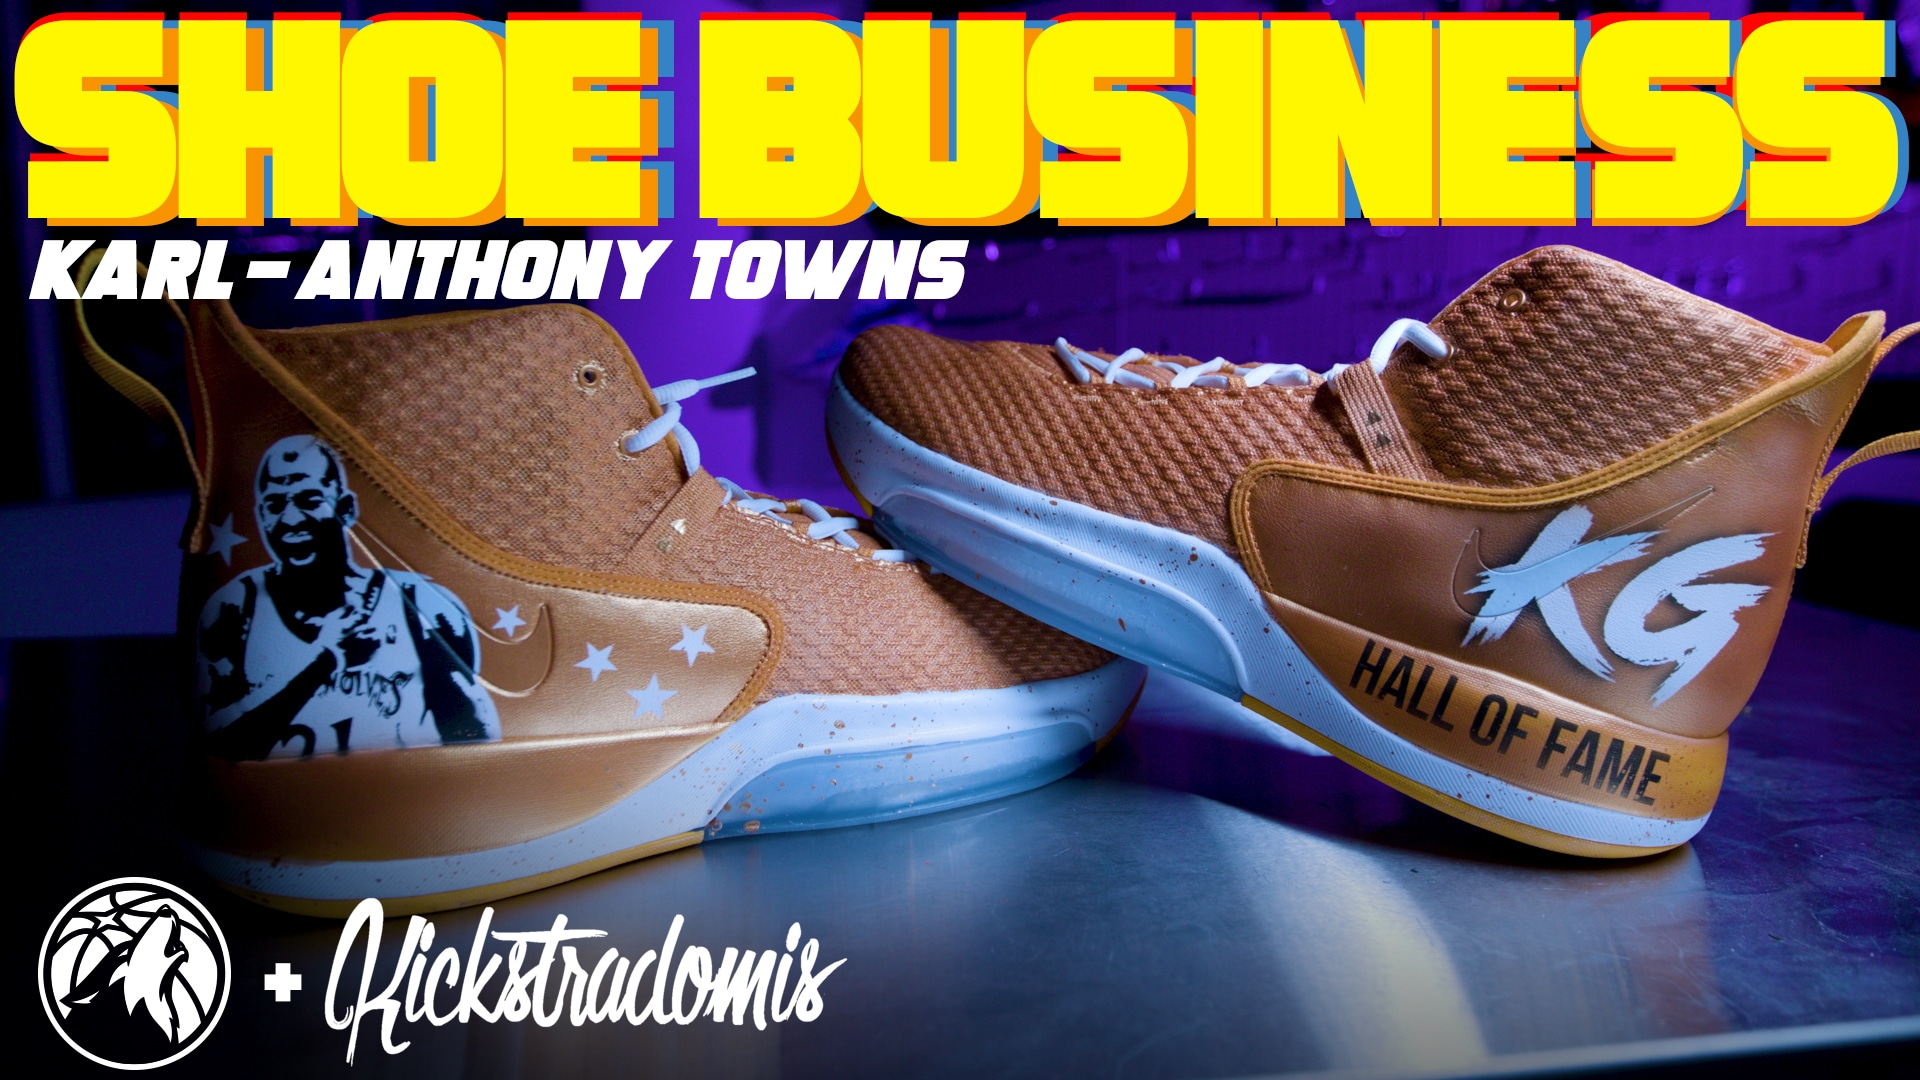 Shoe Business With Kickstradomis | Karl-Anthony Towns